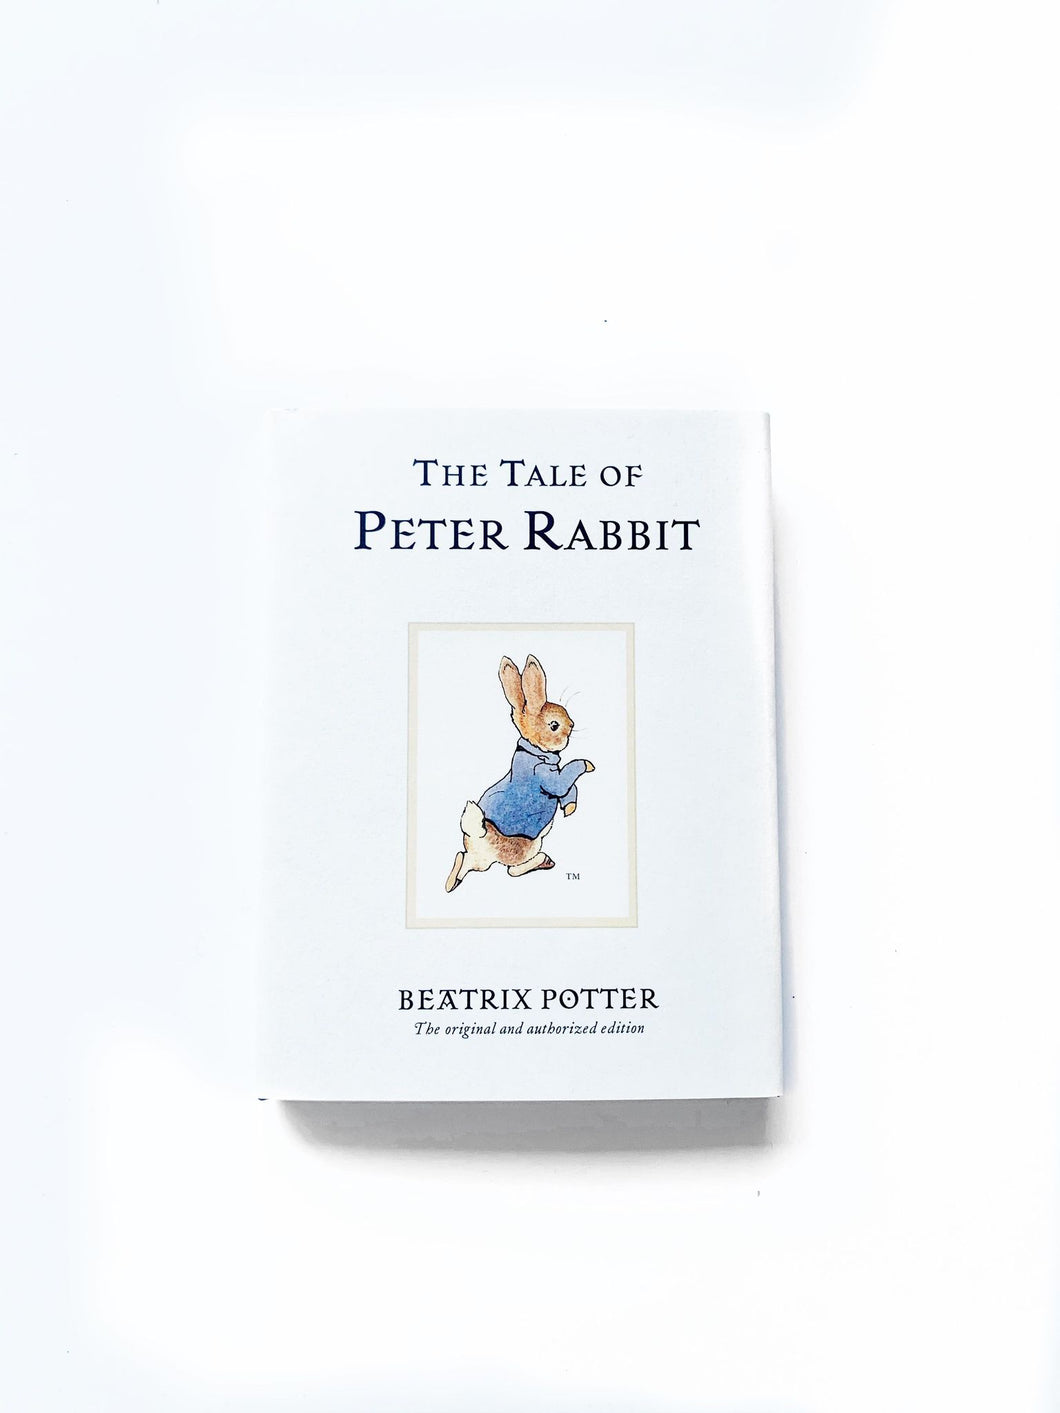 PETER RABBIT MINI HARDCOVER BOOK